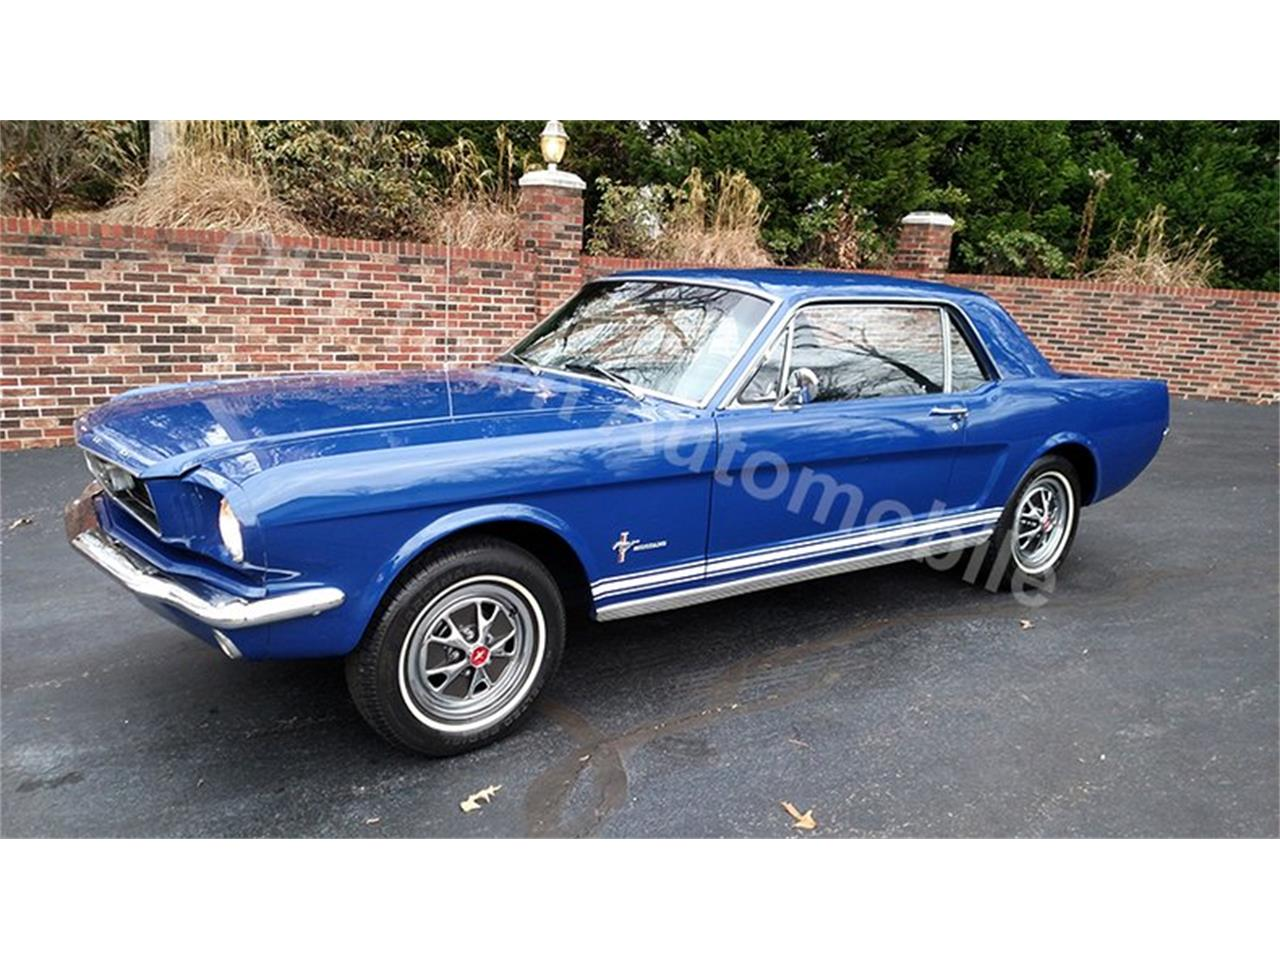 Old Mustangs For Sale >> 1966 Ford Mustang For Sale Classiccars Com Cc 1181601